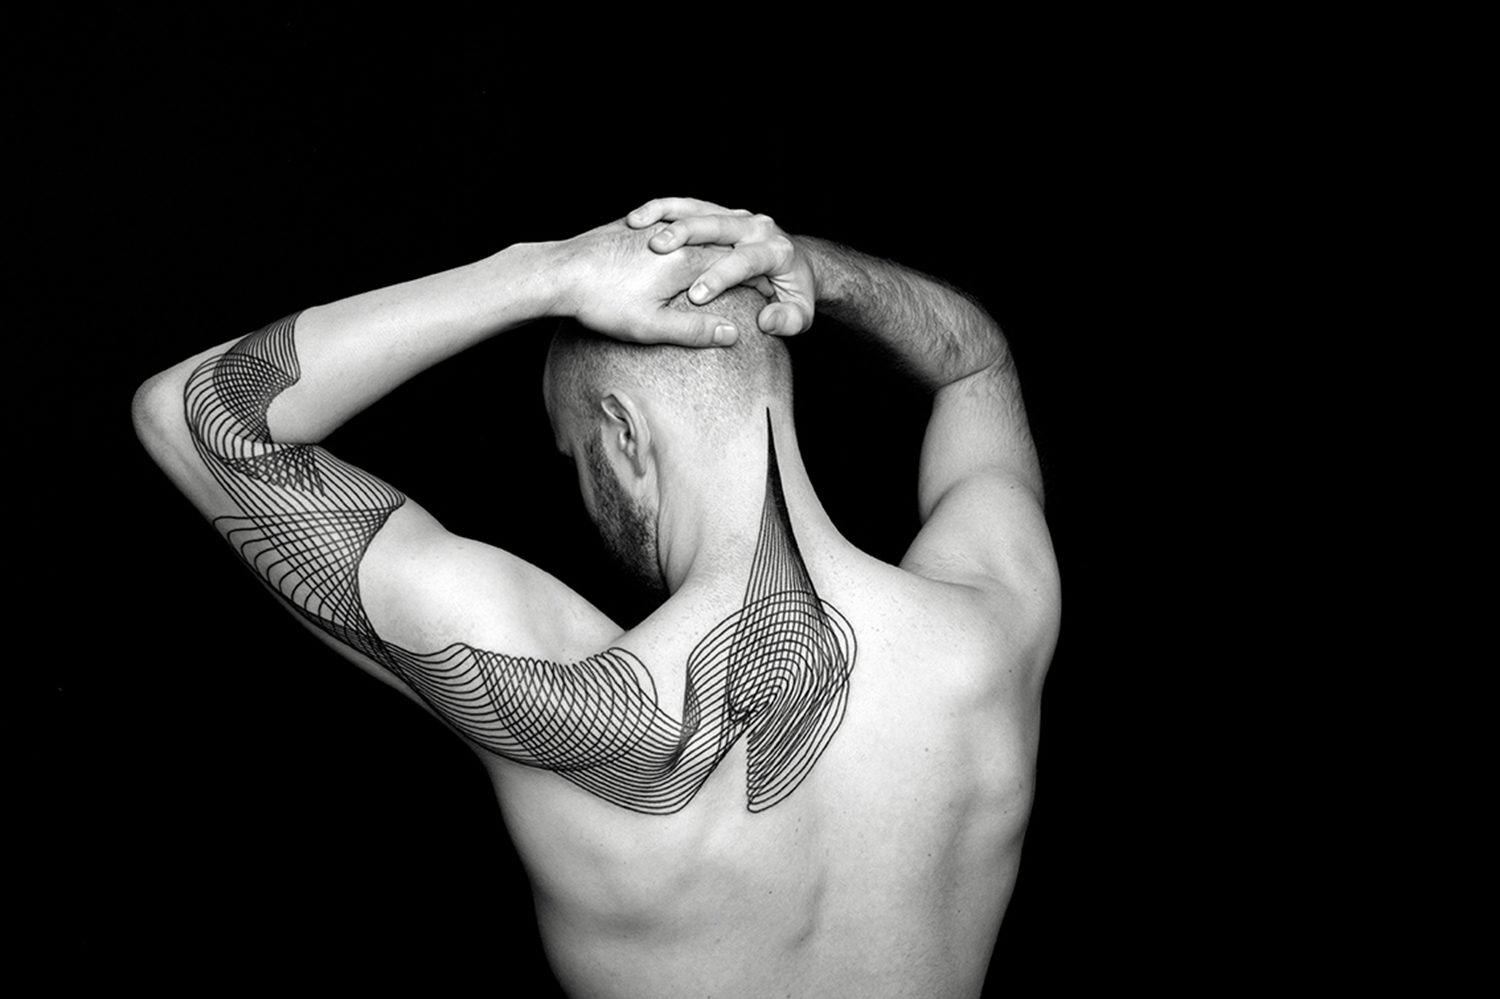 linework on back by chaim machlev. photo © erik weiss